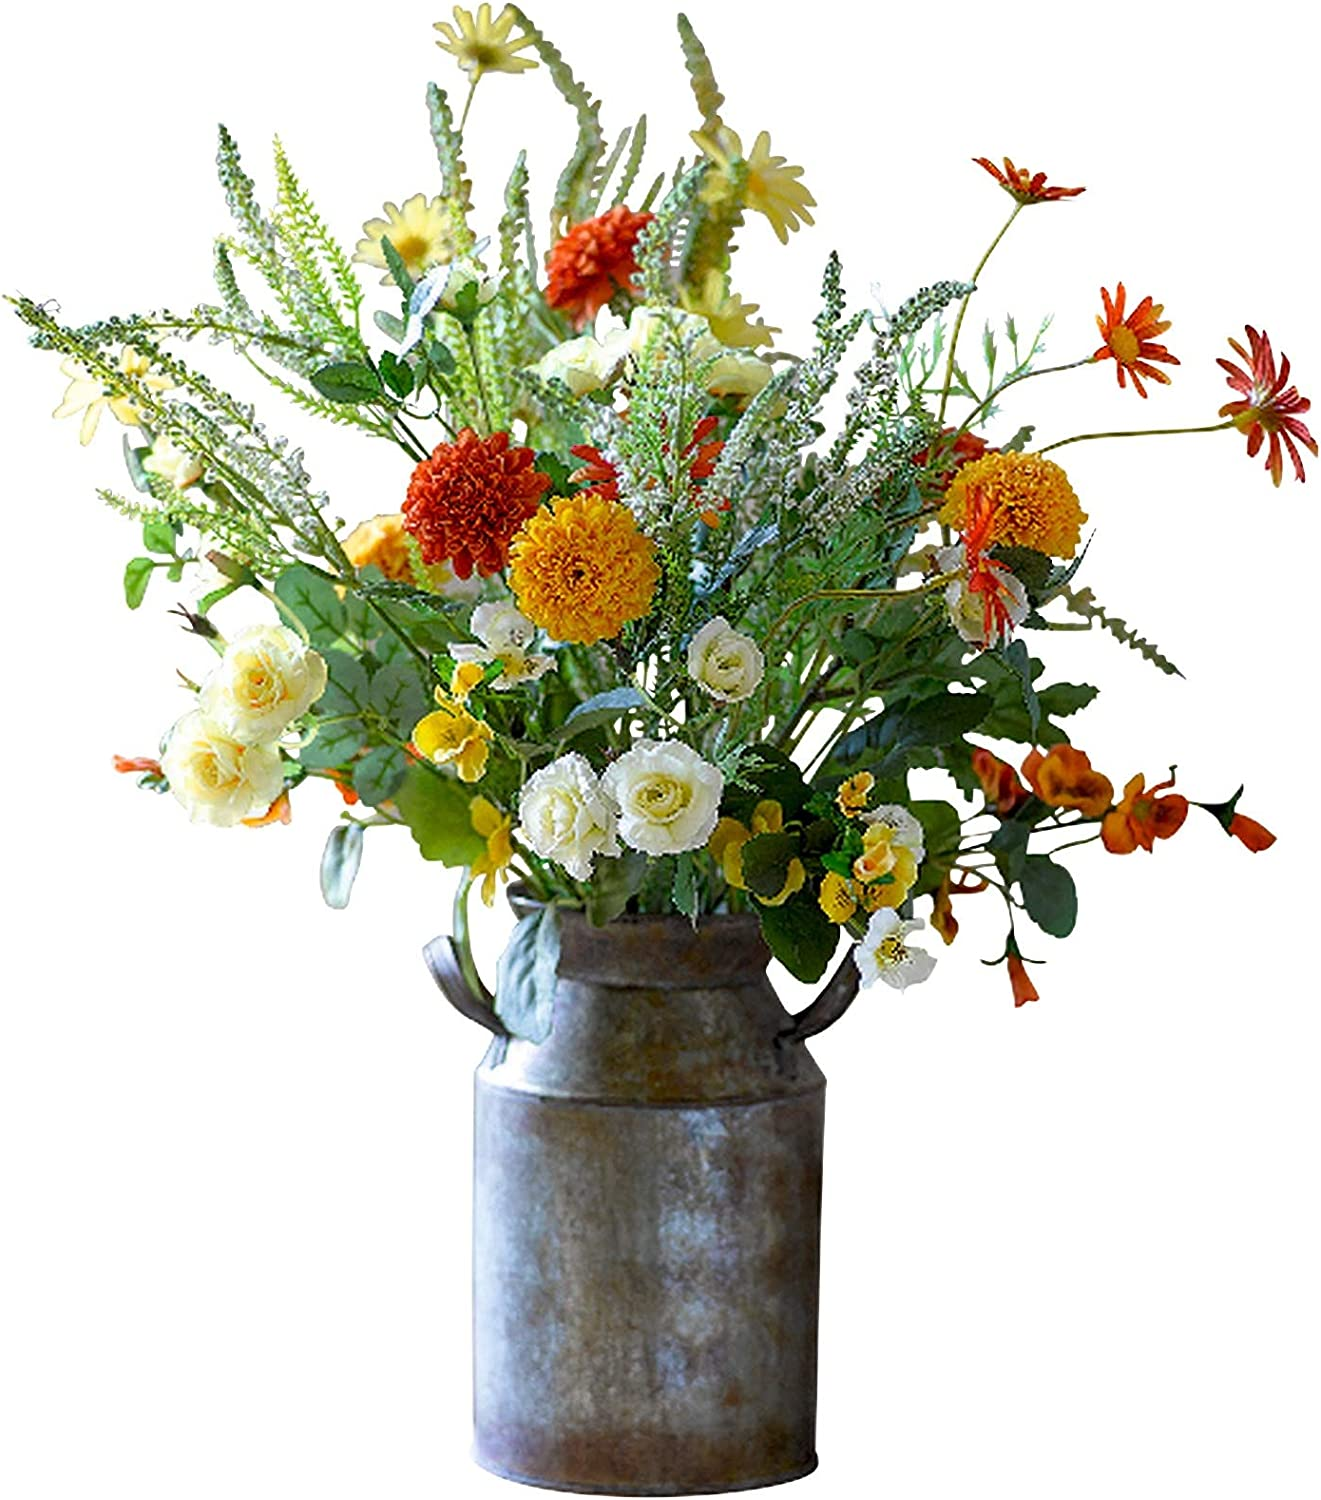 Bloom Artificial Orange Red White Marigold Flower Arrangement Faux Silk Flowers That Look Real Rustic Wedding Flowers Decorations Artificial Foliage Marigold Flower Arrangement Centrepiece Amazon Co Uk Kitchen Home